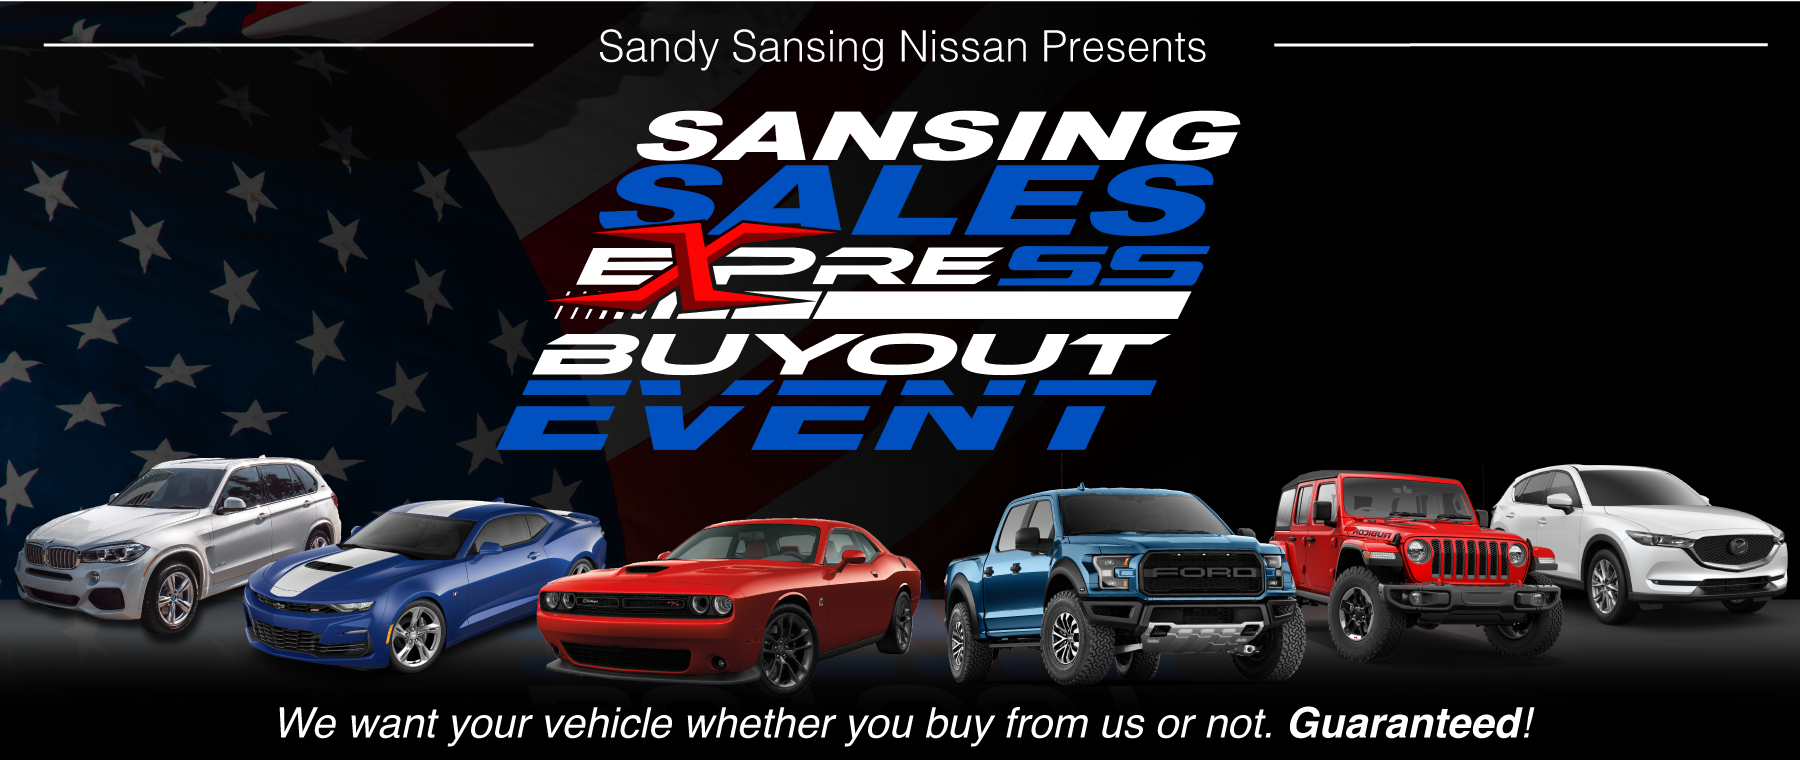 SSX-Website-Carousel-Banners-Dealerships_Website-Carousel-Graphic-Nissan